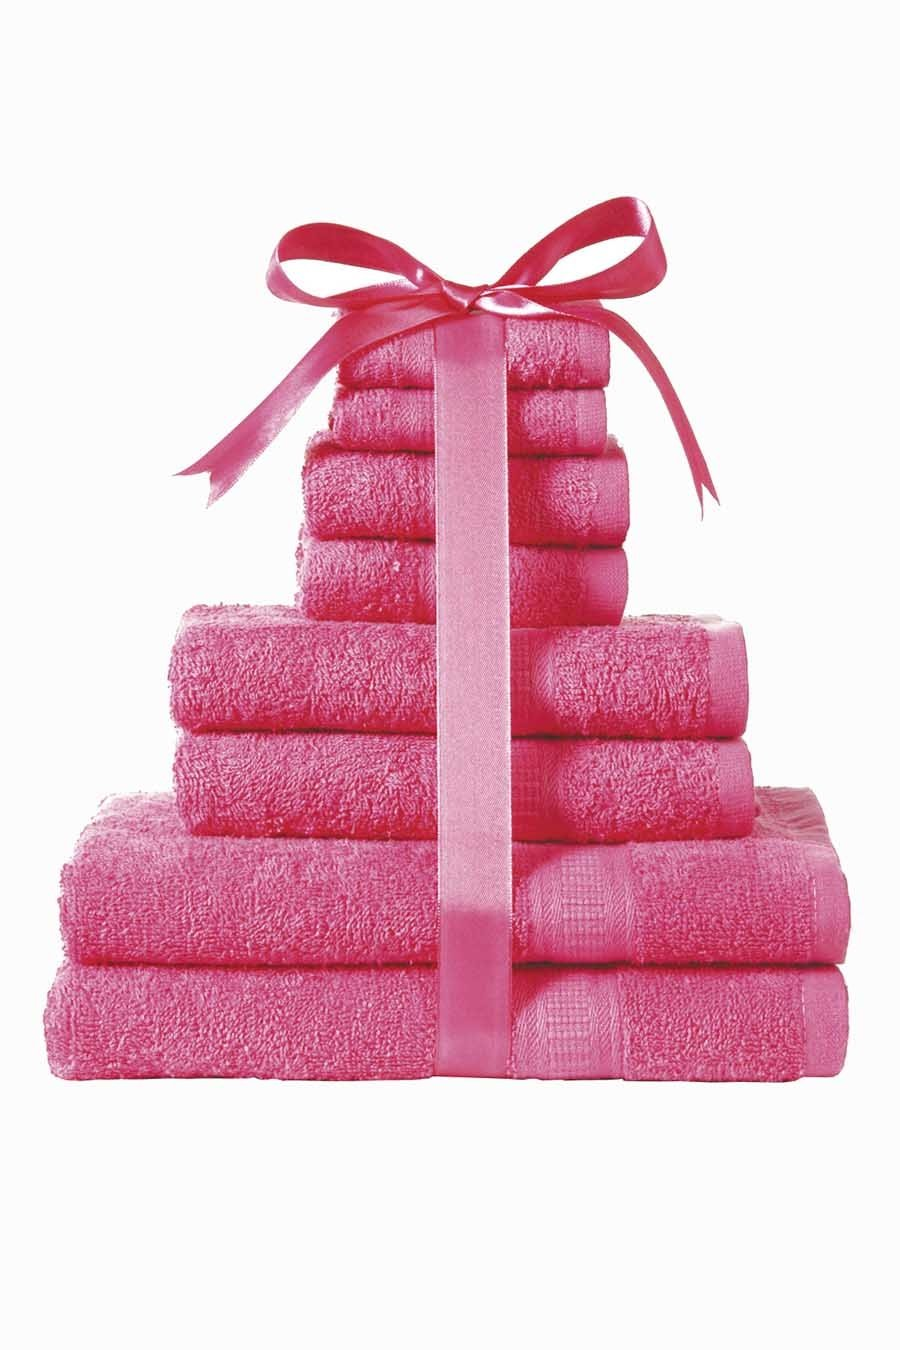 Other Kingsley 8-Piece Towel Bale (cerise) .